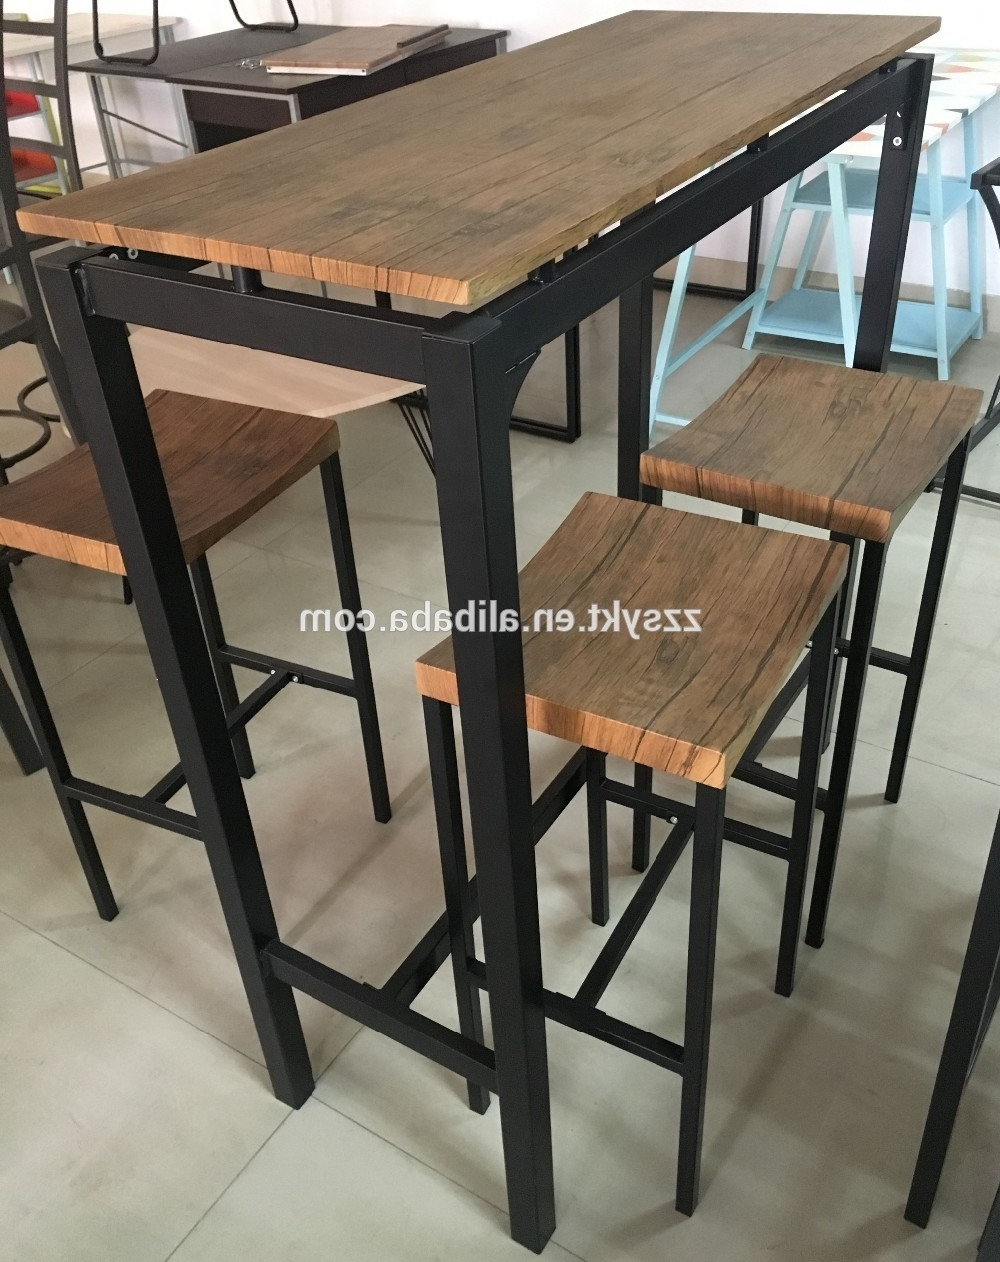 Dining Tables With Metal Legs Wood Top Pertaining To 2018 Modern Lounge Pub Furniture Metal Legs Frame Wood Top Bar Dining (View 19 of 25)